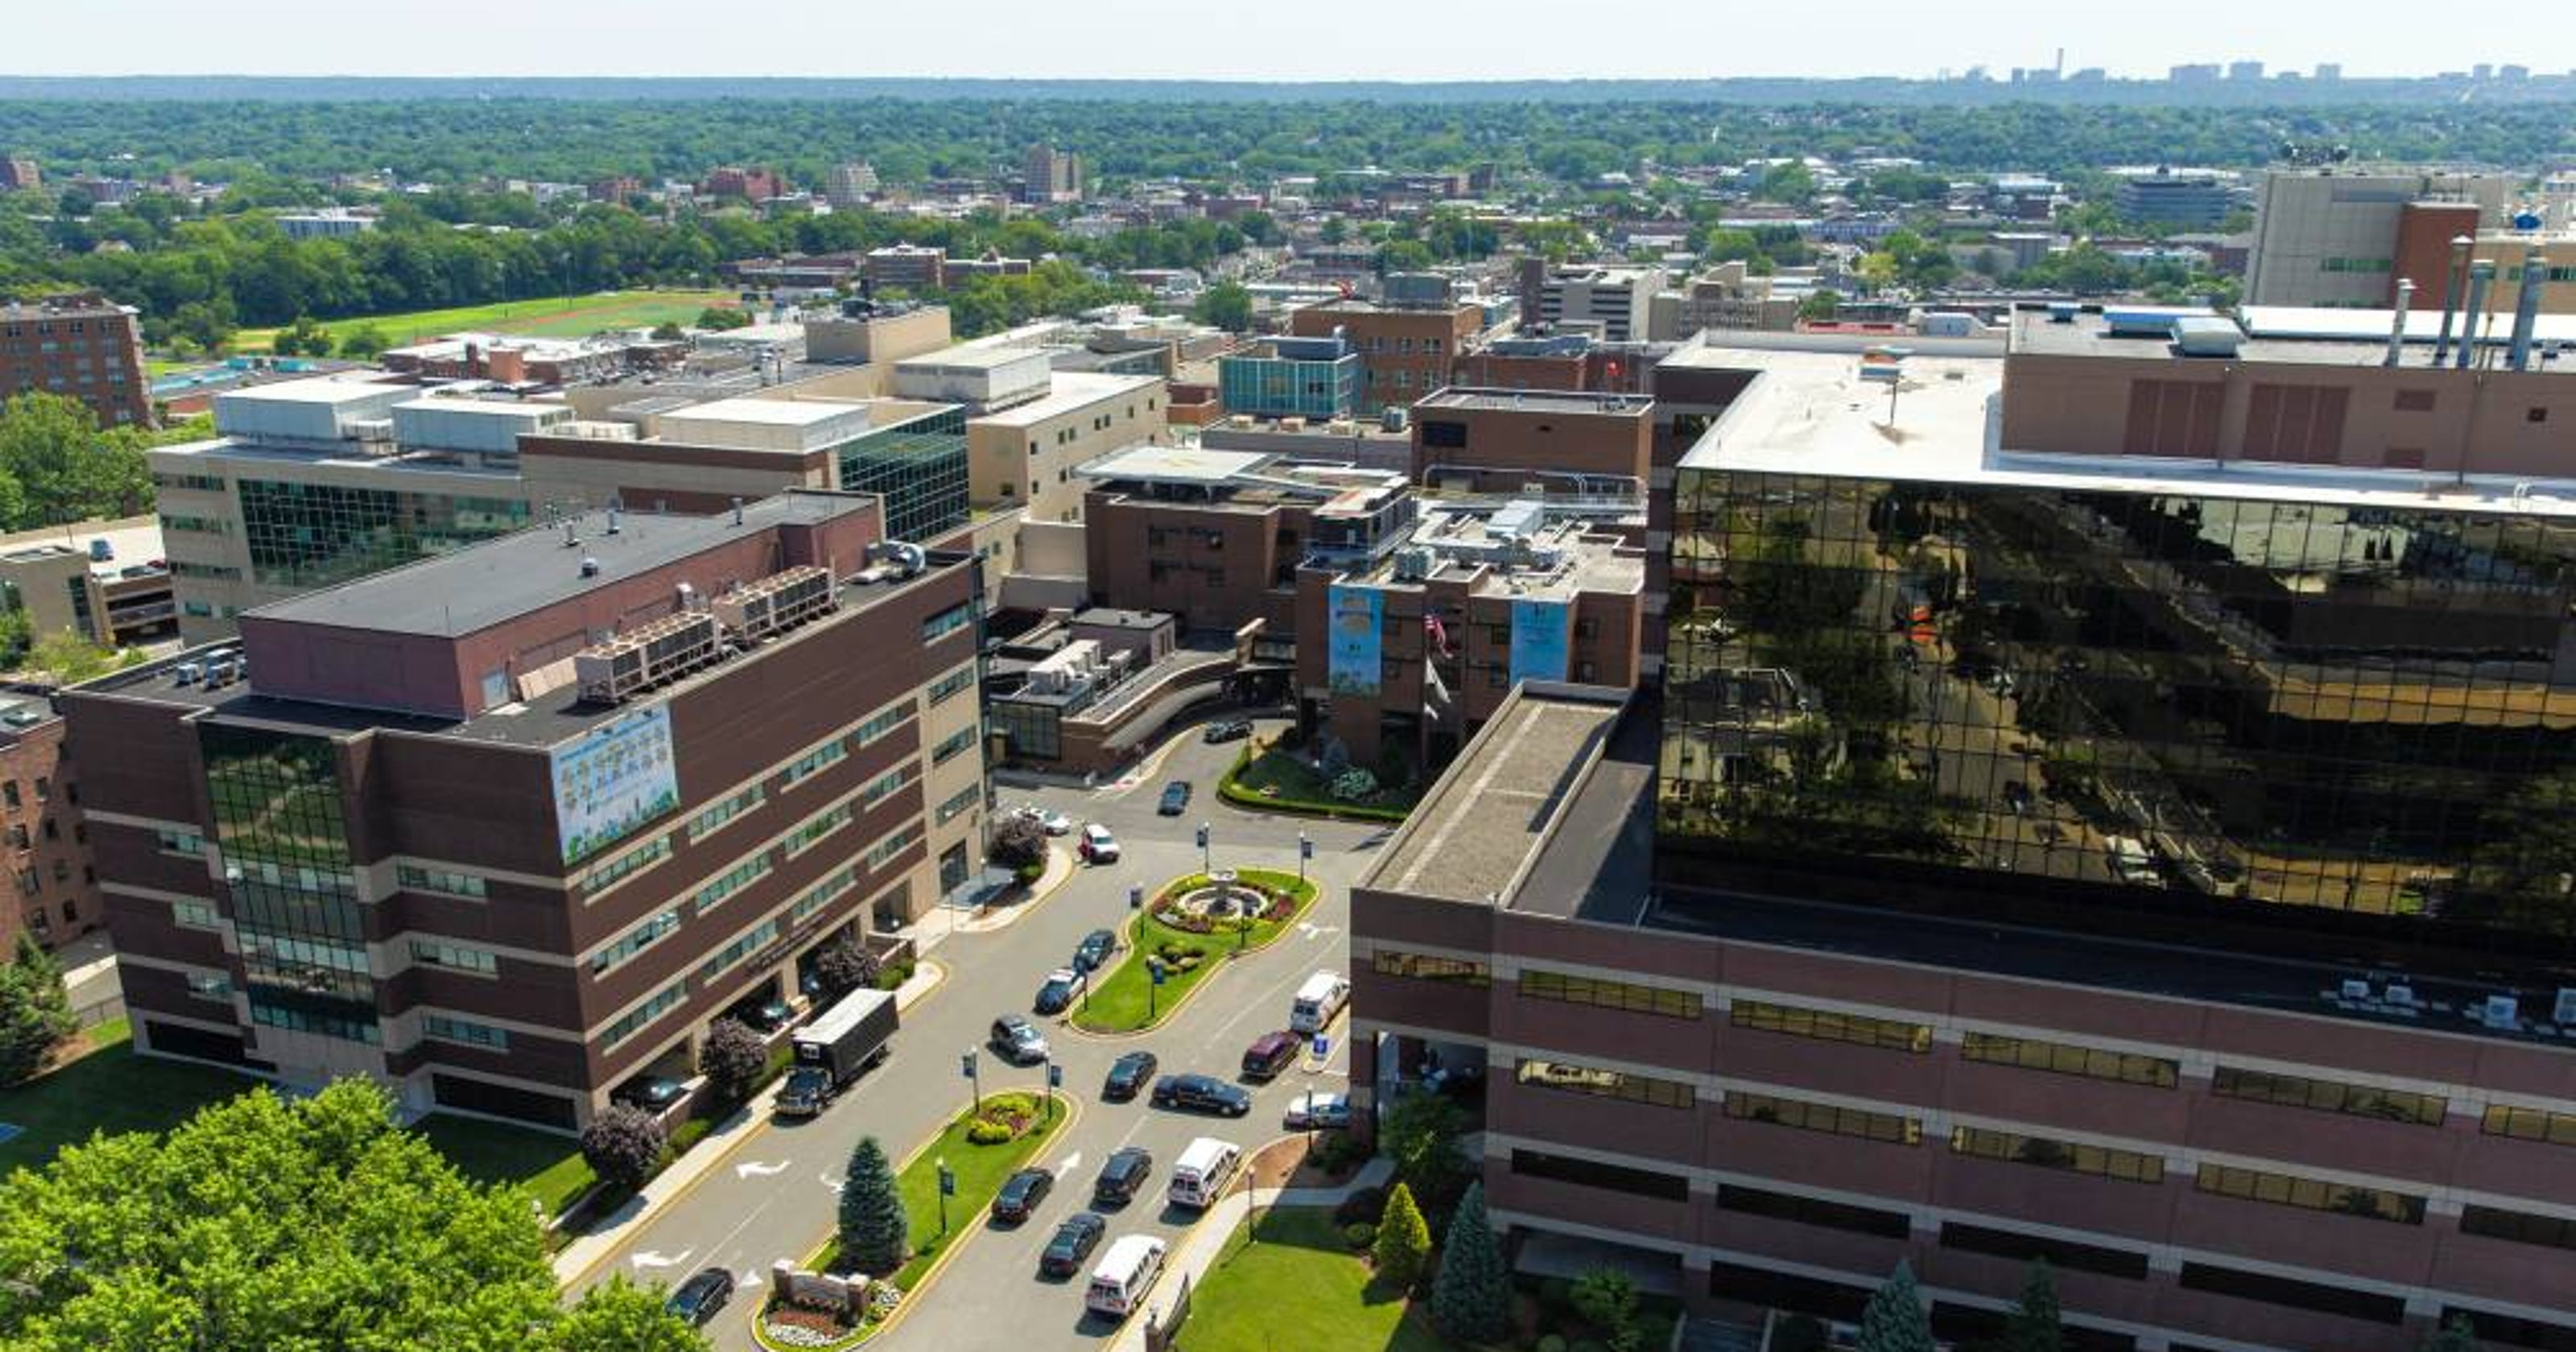 Hackensack NJ hospital to construct 43,500-square-foot